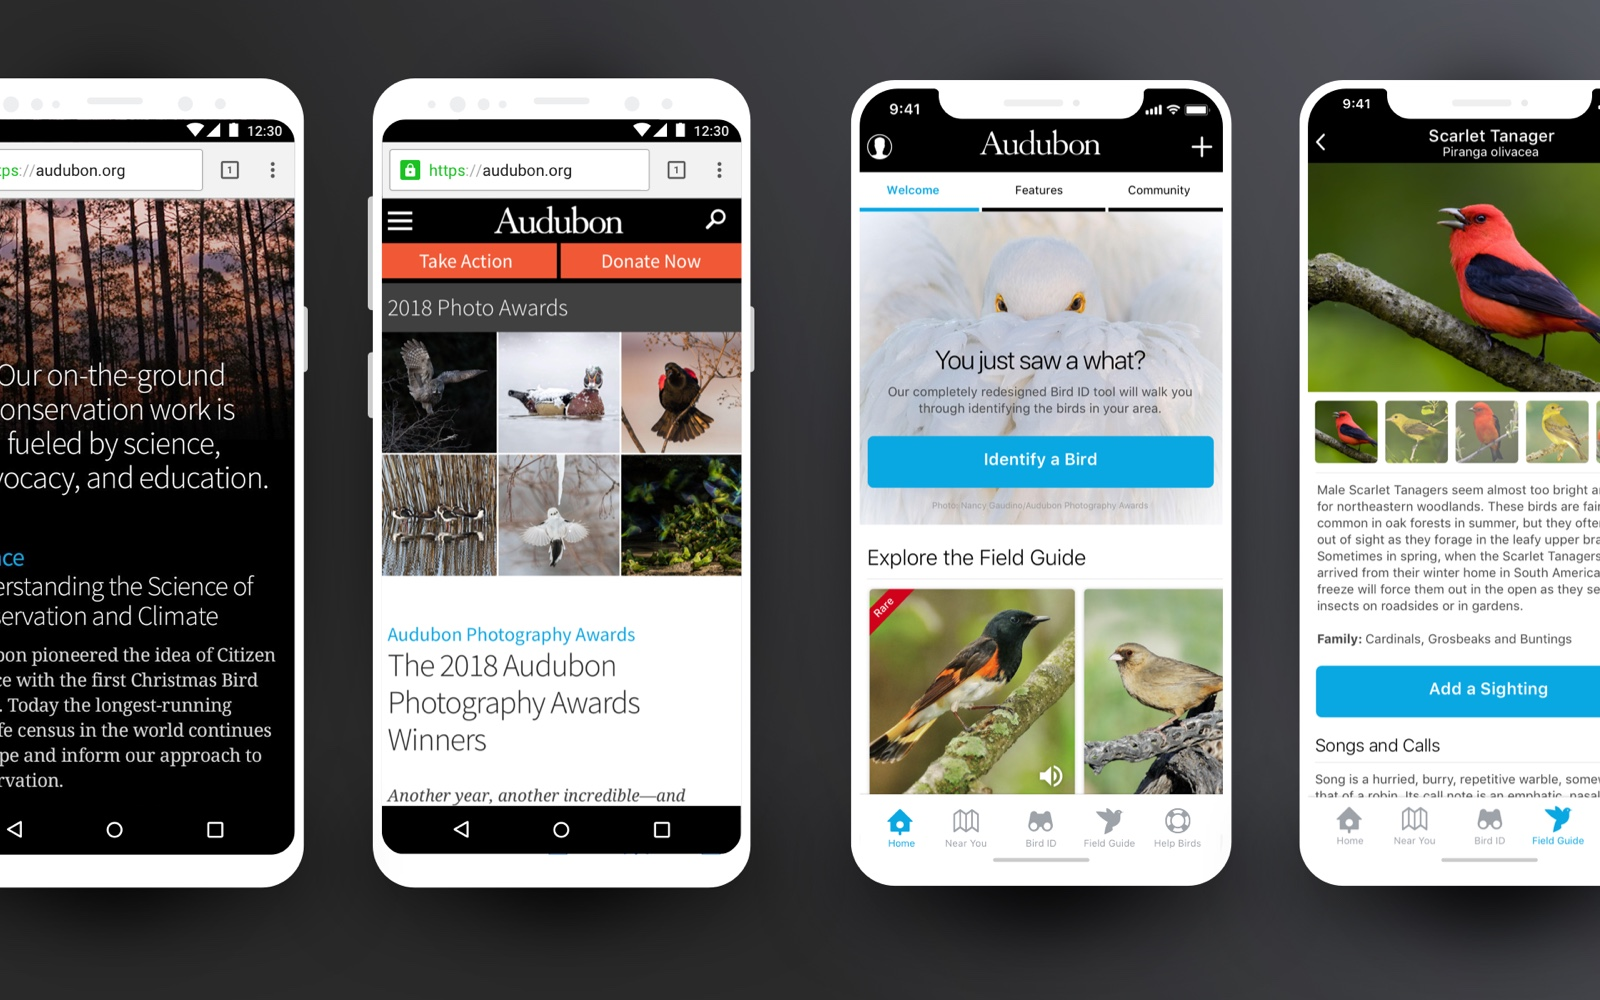 Mobile web and iOS app screens